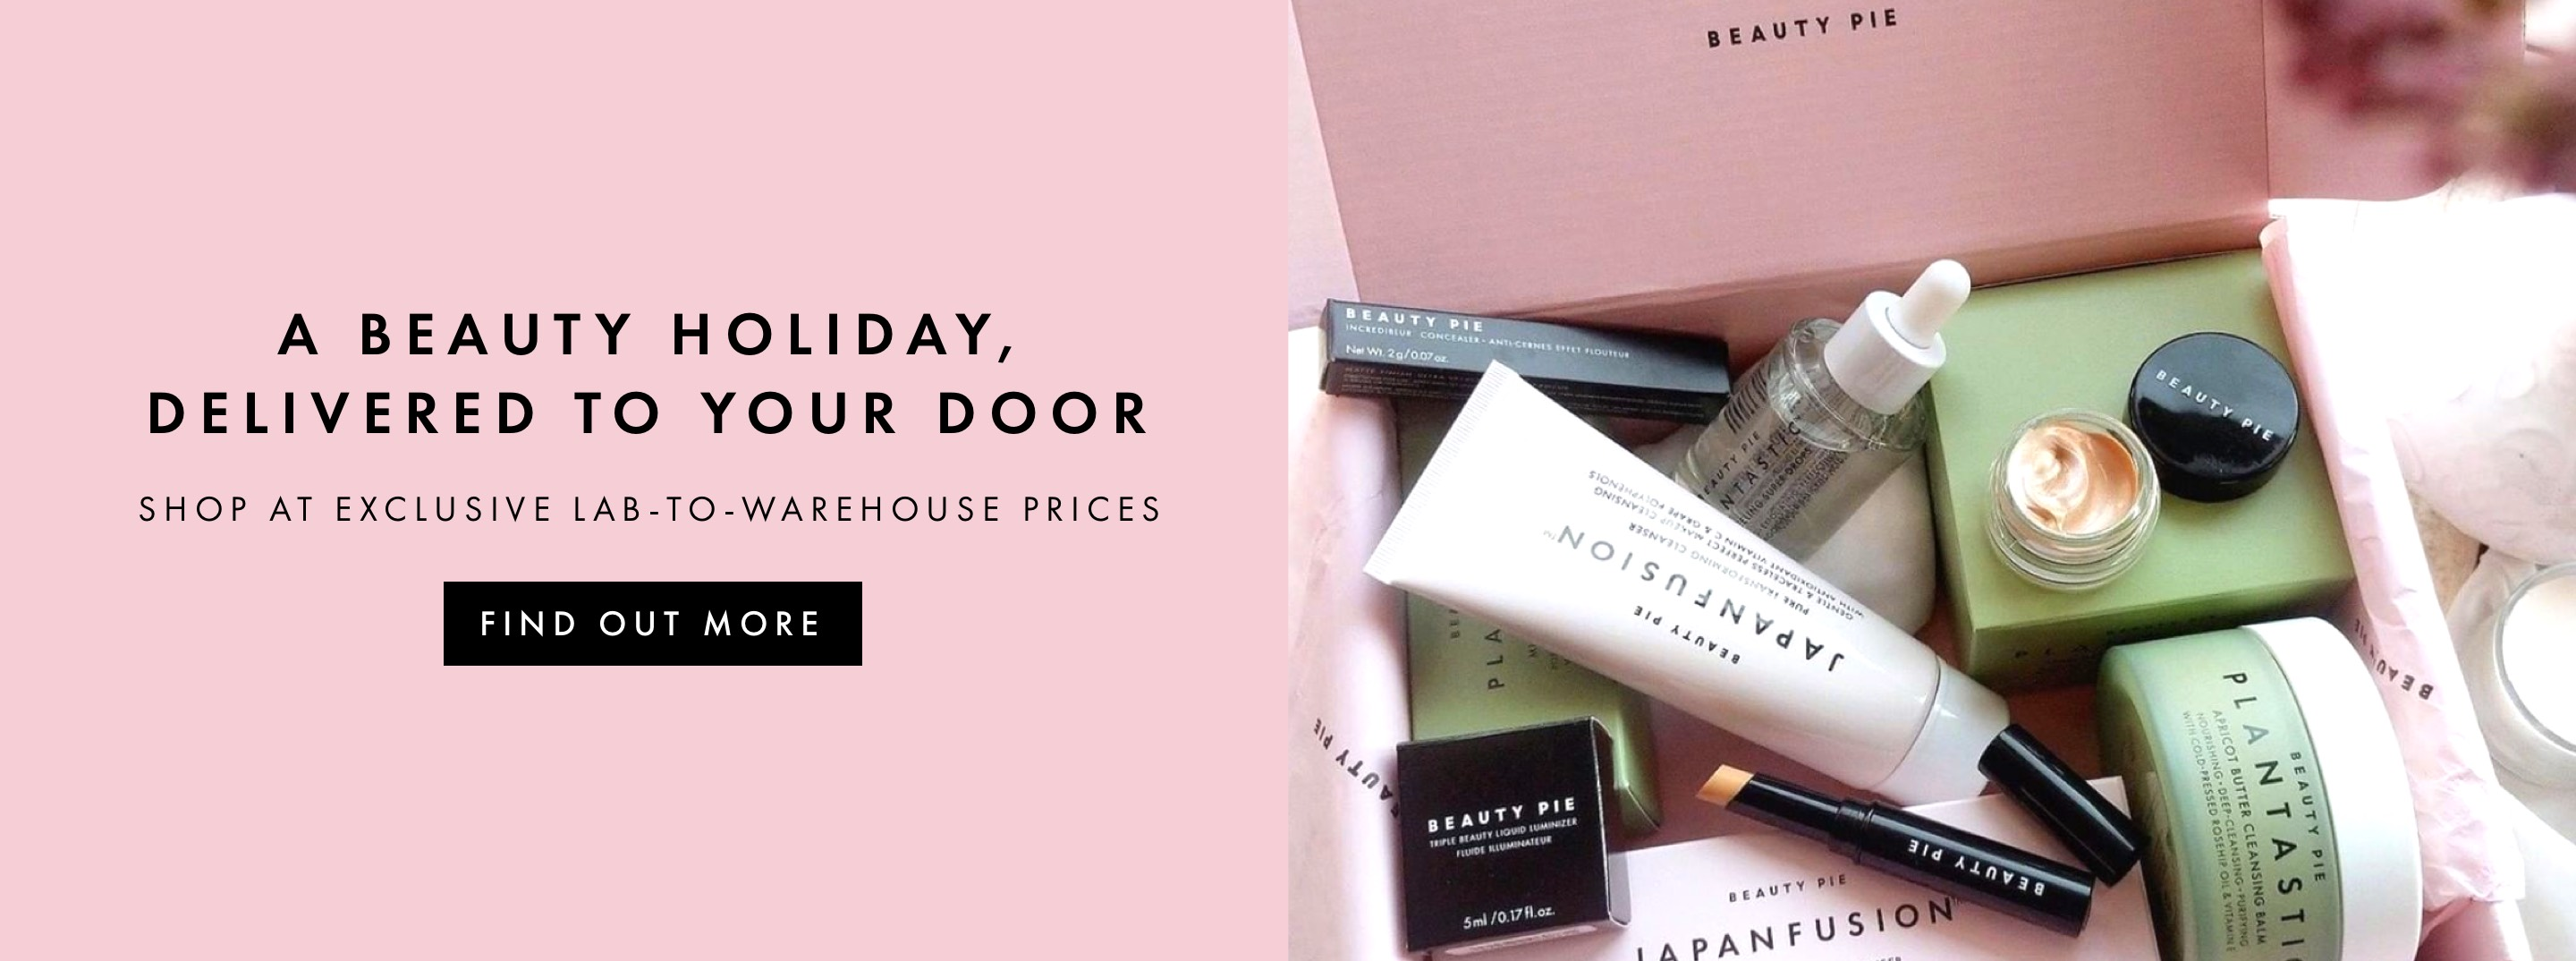 A Beauty Holiday Delivered To Your Door.